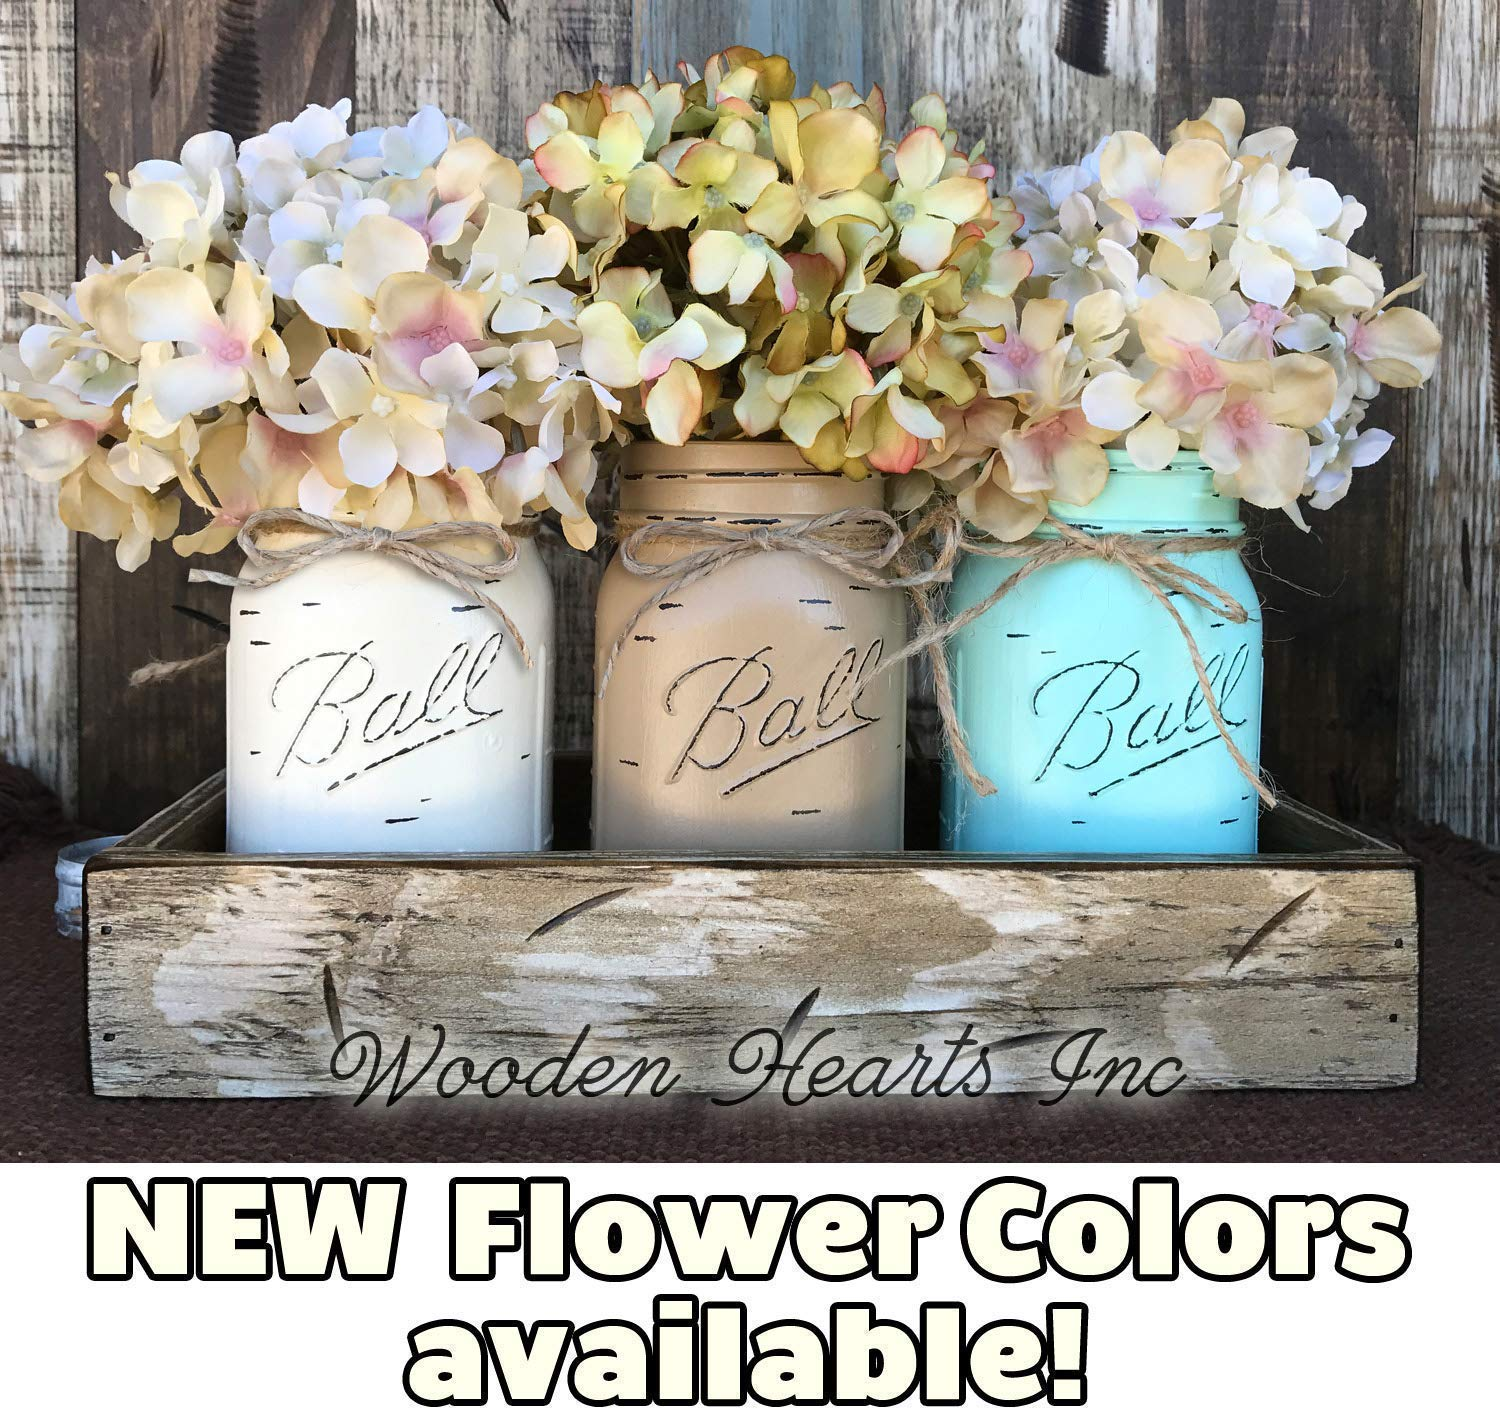 Mason Canning JARS & Wood ANTIQUE WHITE Tray Spring Centerpiece with 3 Ball Pint Jar -Kitchen Table Decor Distressed Rustic (Flowers Optional) -CREAM, COFFEE, SEAFOAM Painted Jars (Pictured) by Wooden Hearts